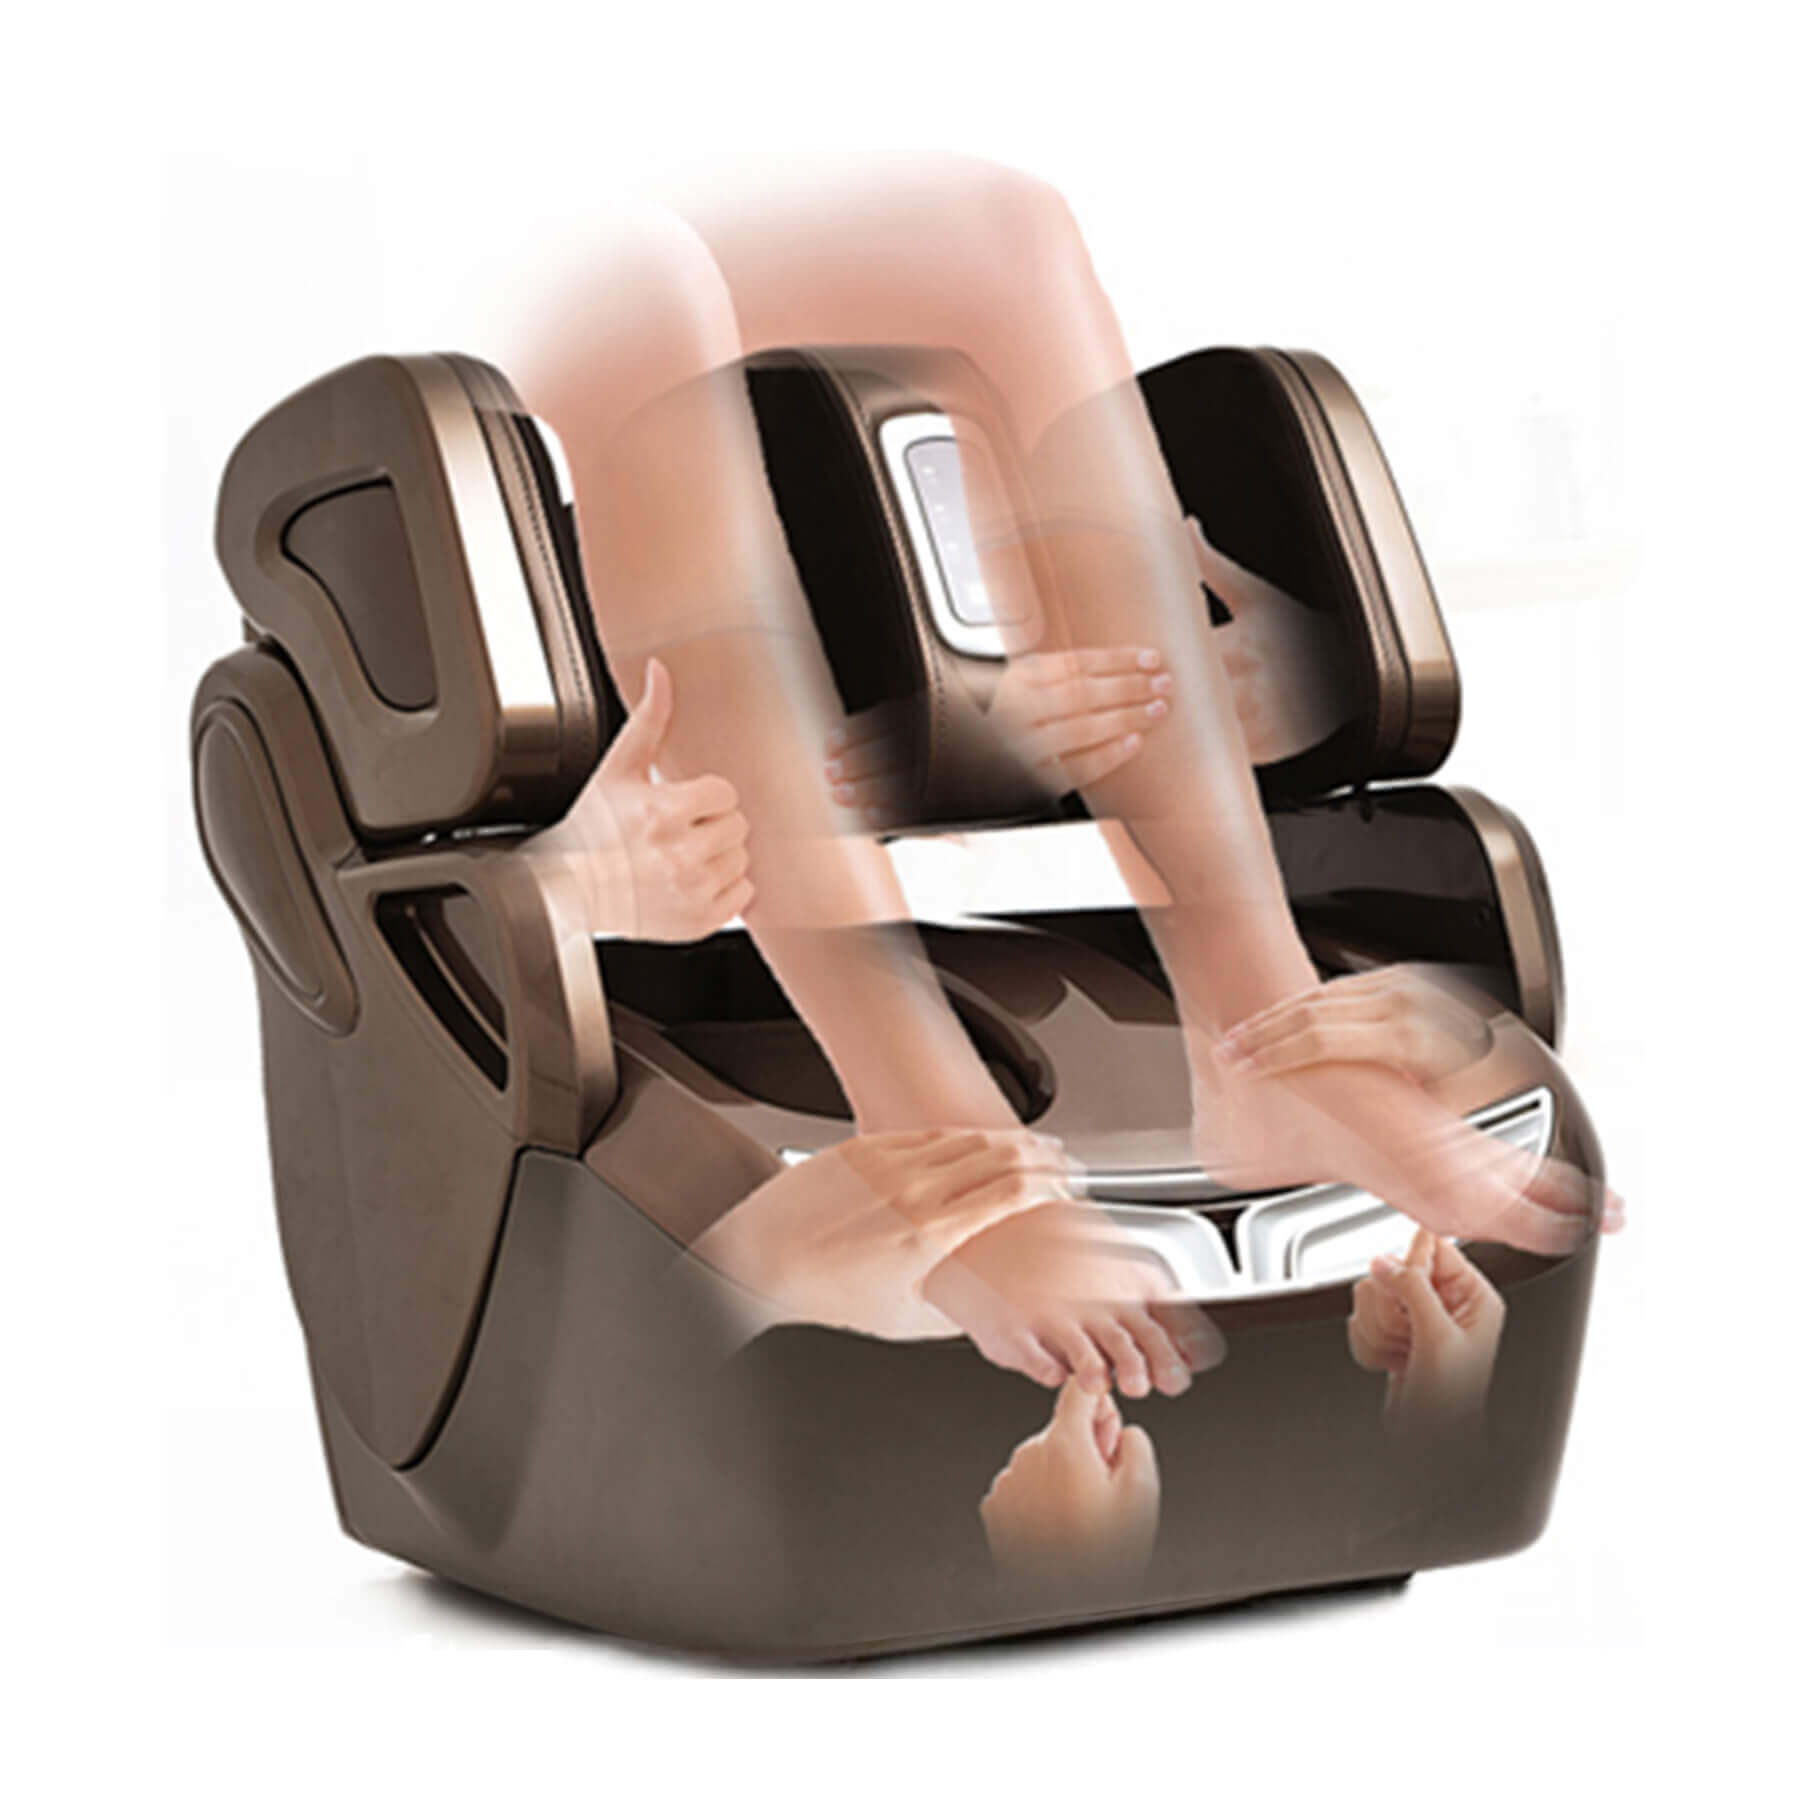 Indulge IF-839 leg, foot and knee massager with Rocker Massage Technology and Dynamic Squeeze™ air massage